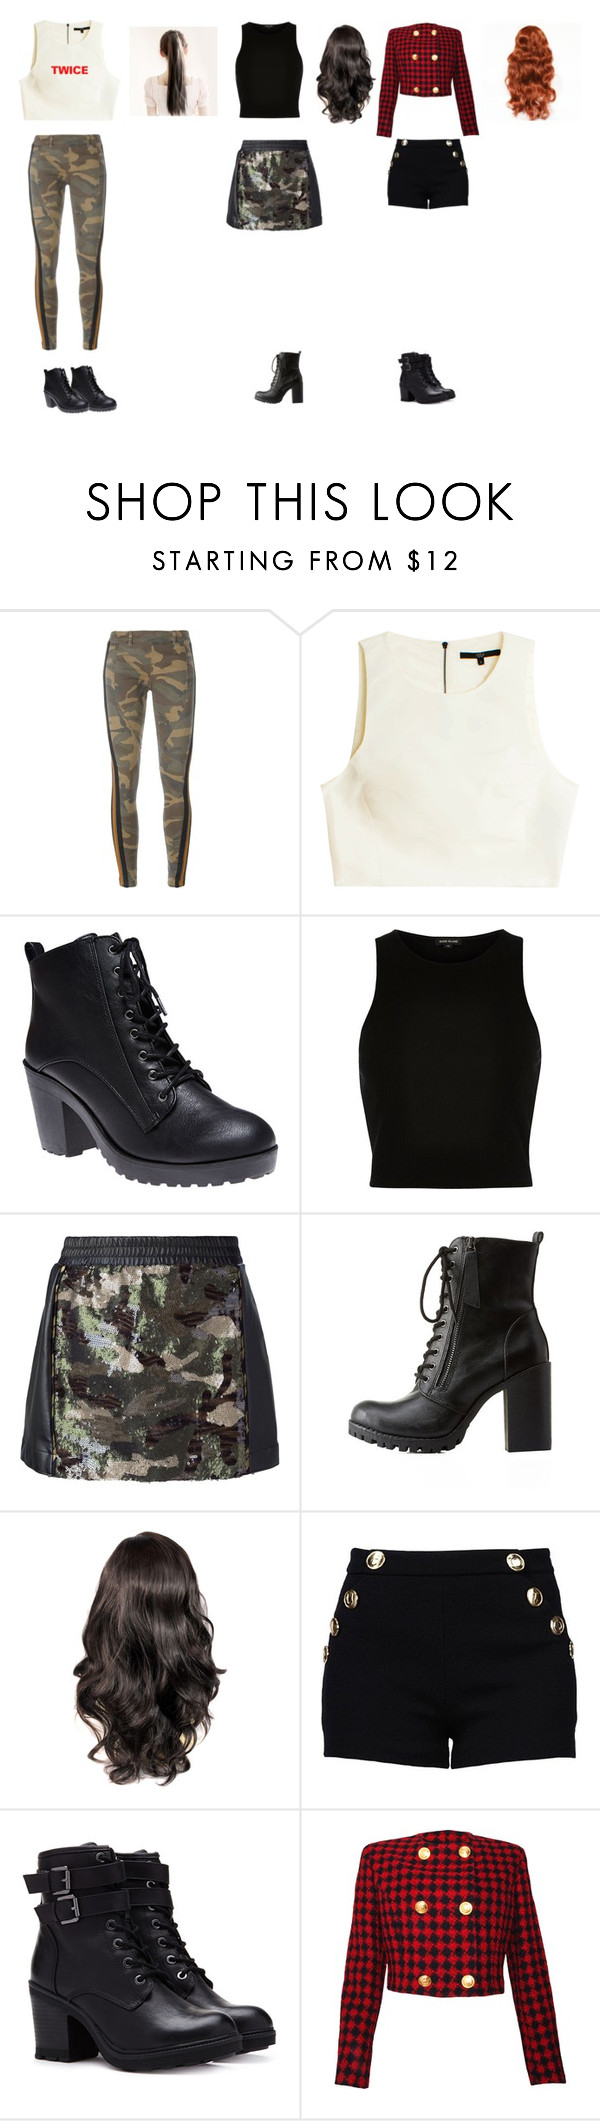 """KPOP TWICE inspired"" by chaeyeonj ❤ liked on Polyvore featuring Faith Connexion, TIBI, Wet Seal, River Island, 8PM, Charlotte Russe, Boutique Moschino, Forever 21 and Versace"